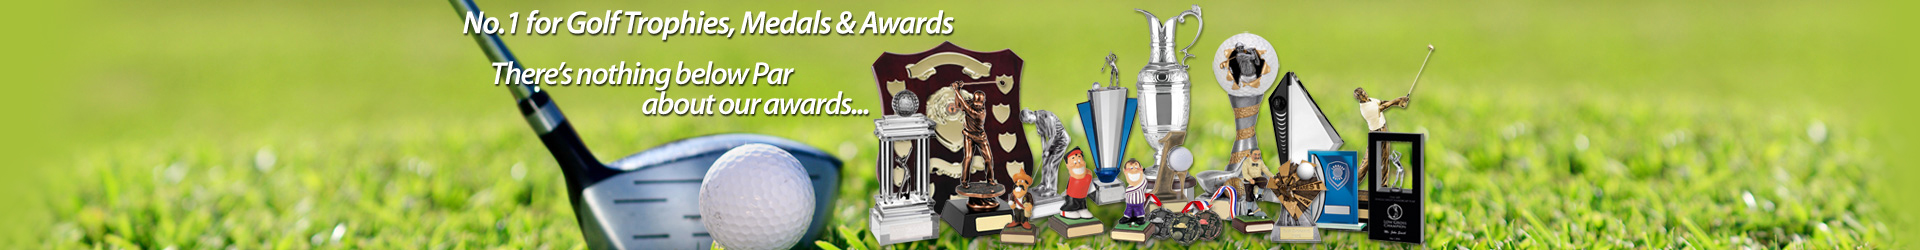 Golf Trophies Medals & Awards